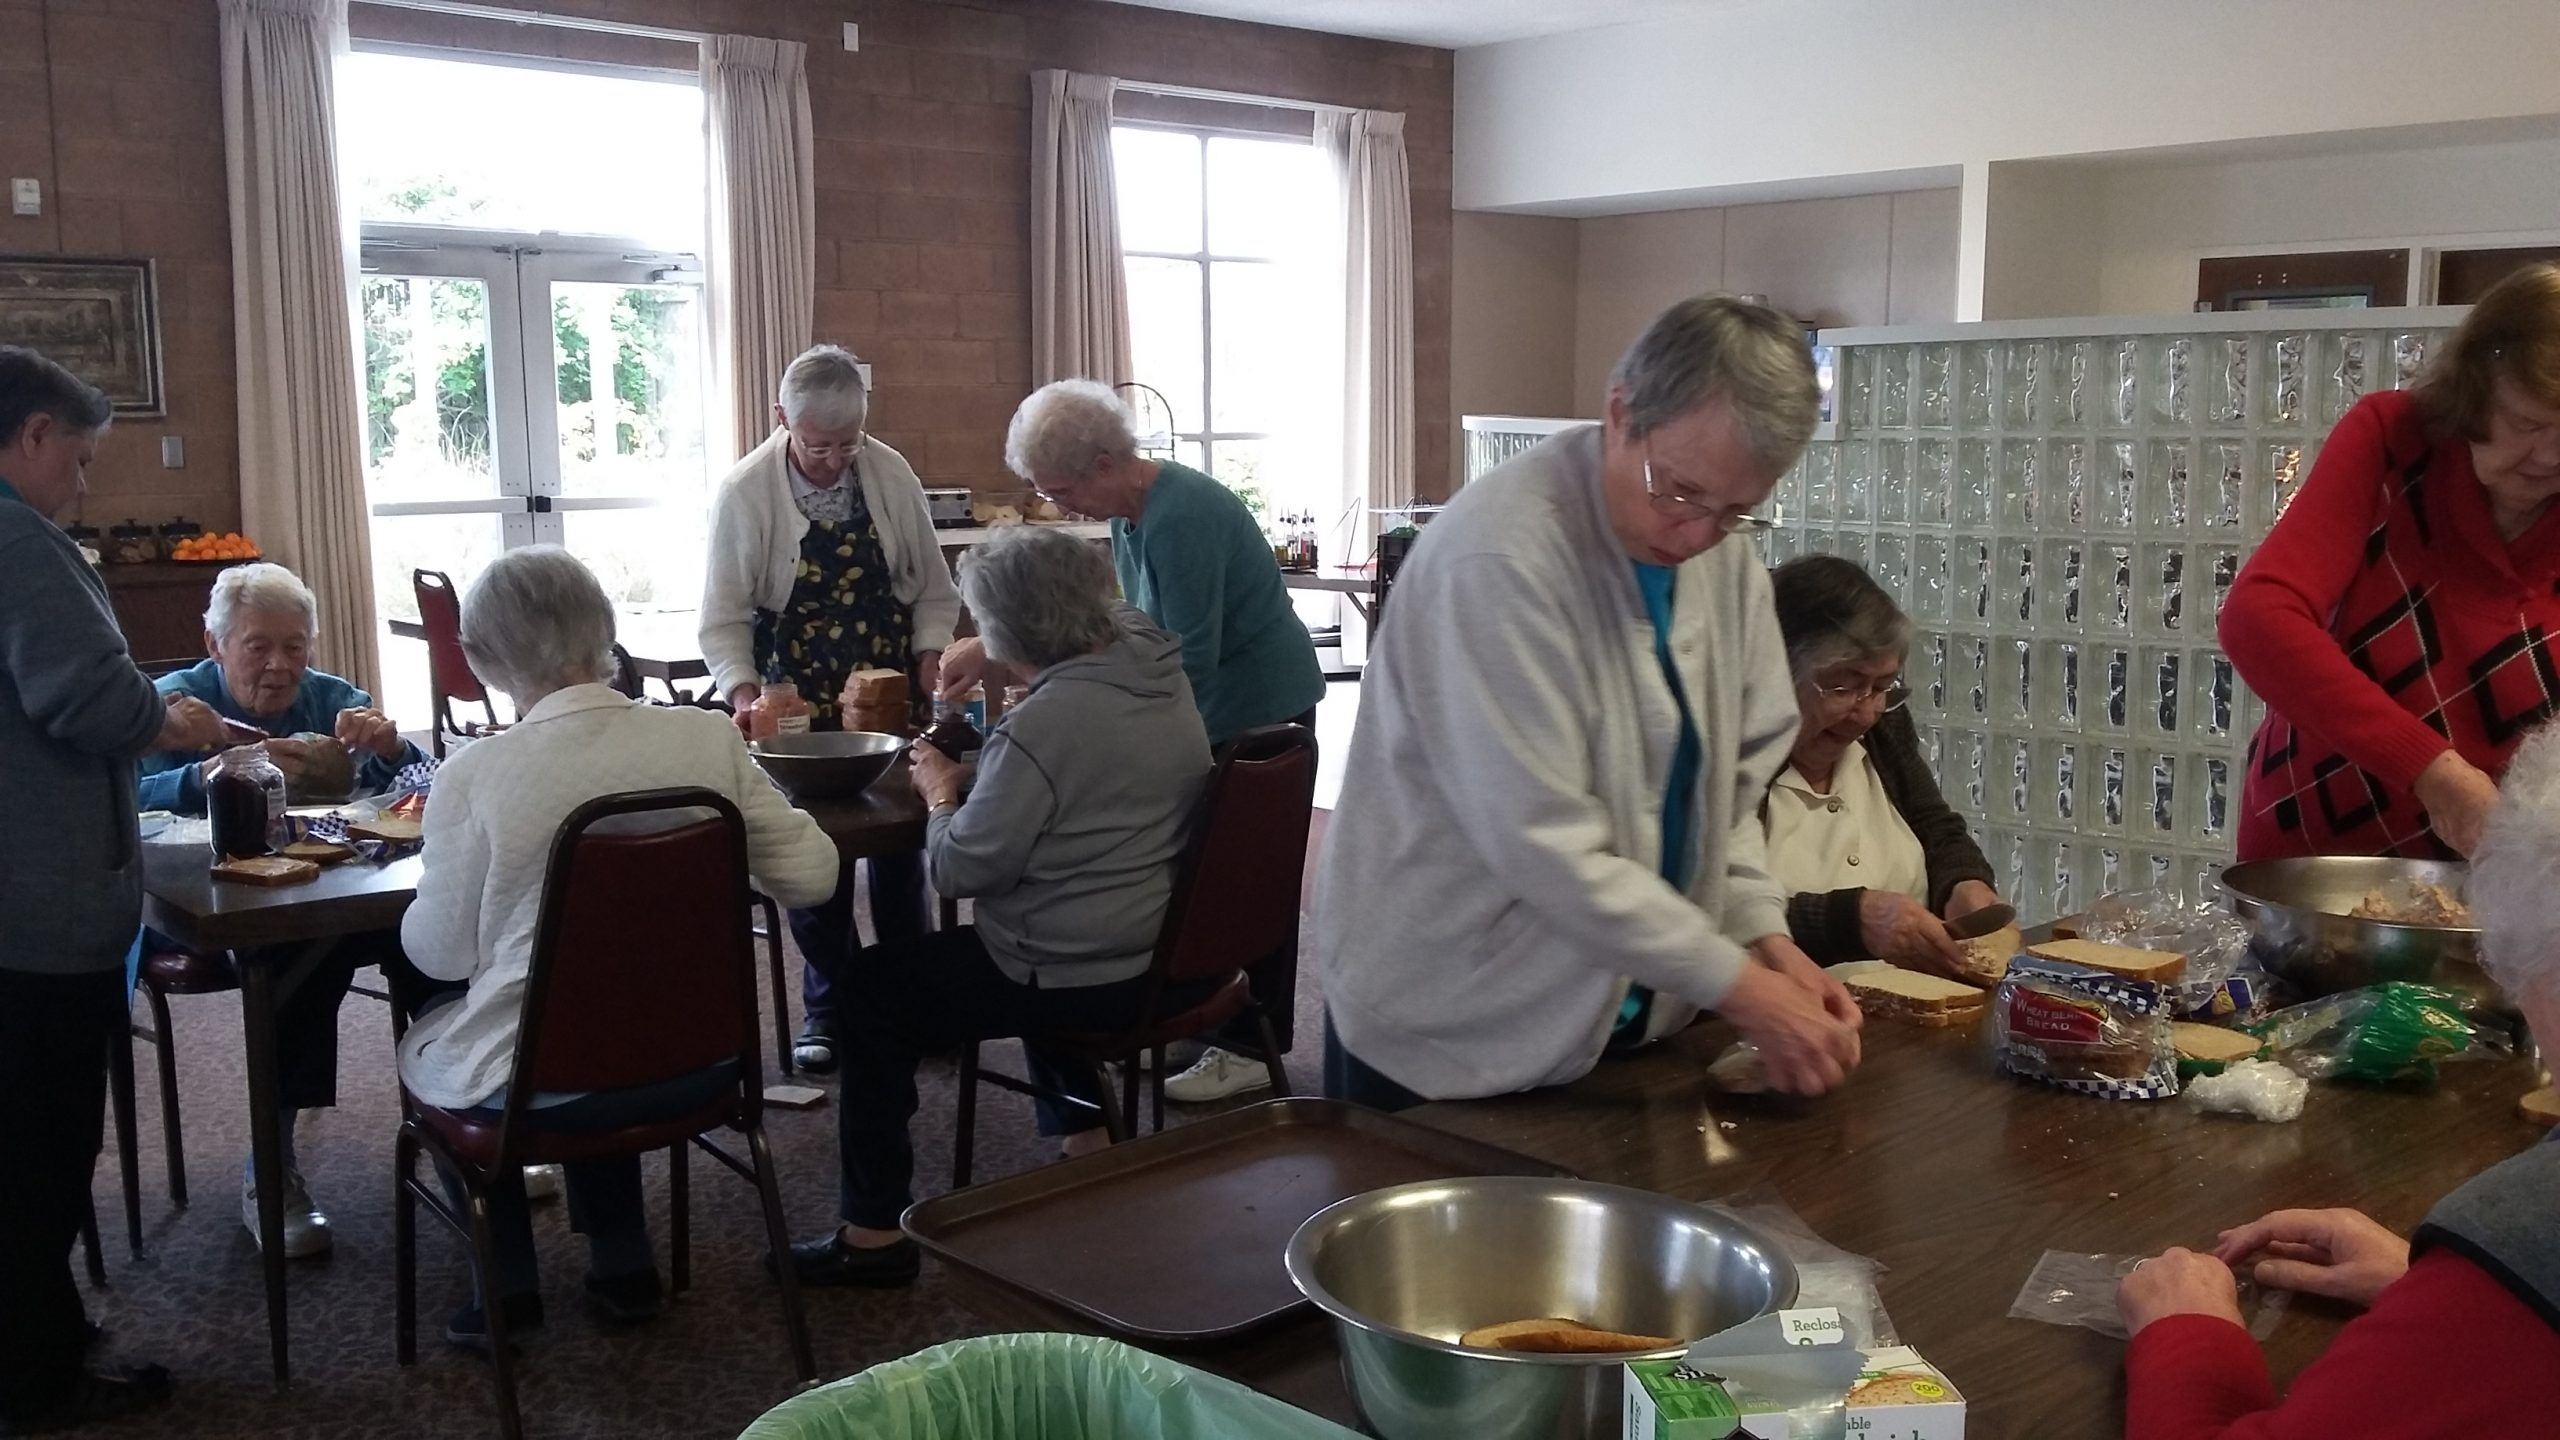 Presentation Motherhouse Sisters making sandwiches for the Day Laborers program.